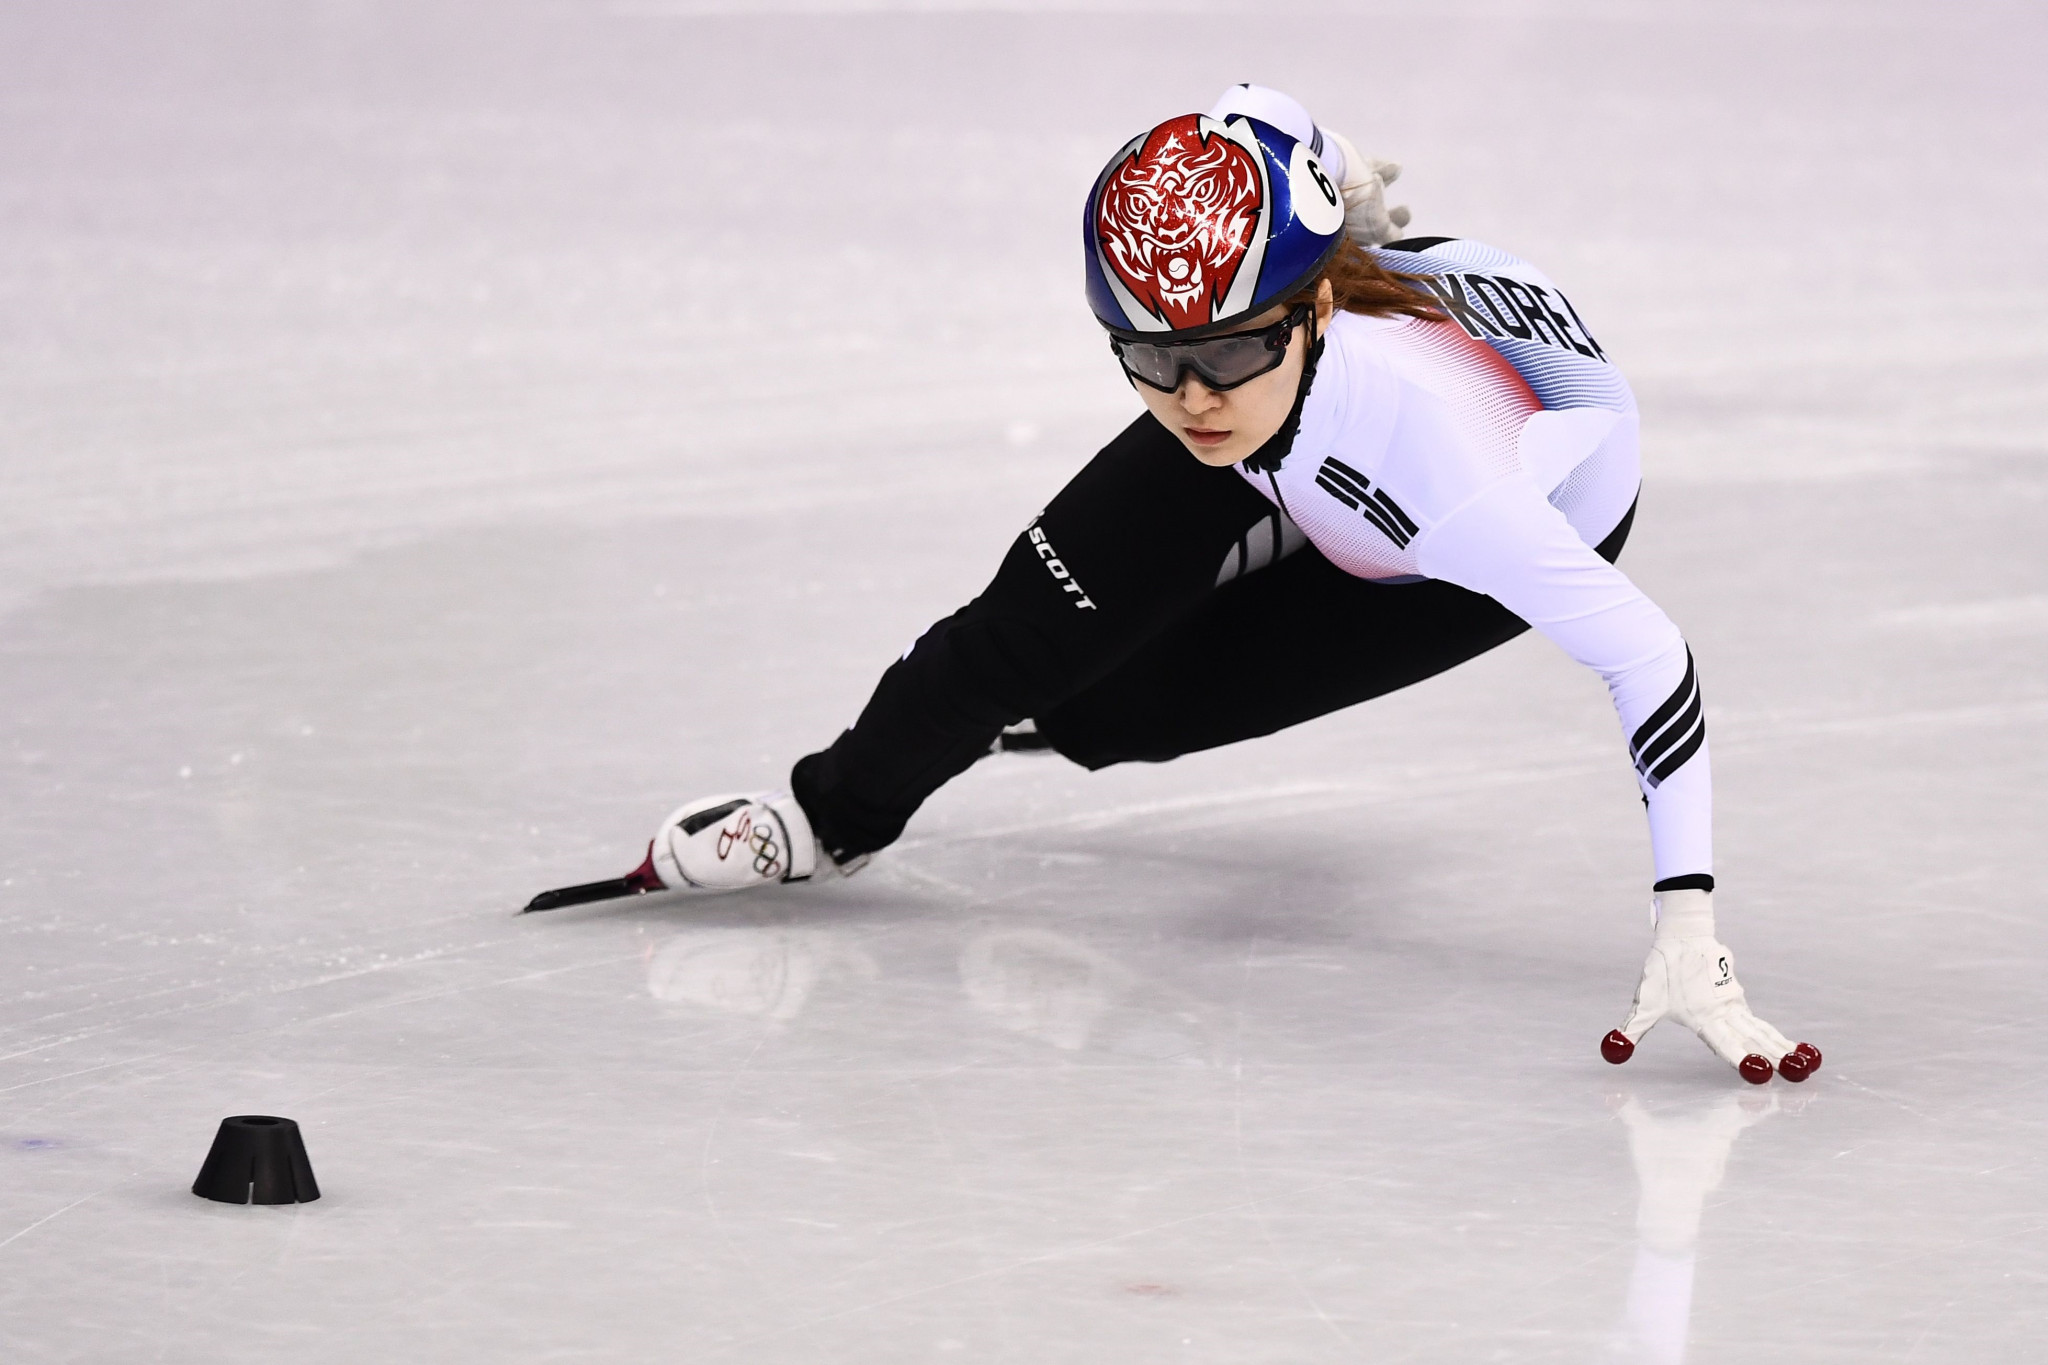 Choi makes it a hat-trick of gold medals as South Korea dominate final day of World Short Track Speed Skating Championships